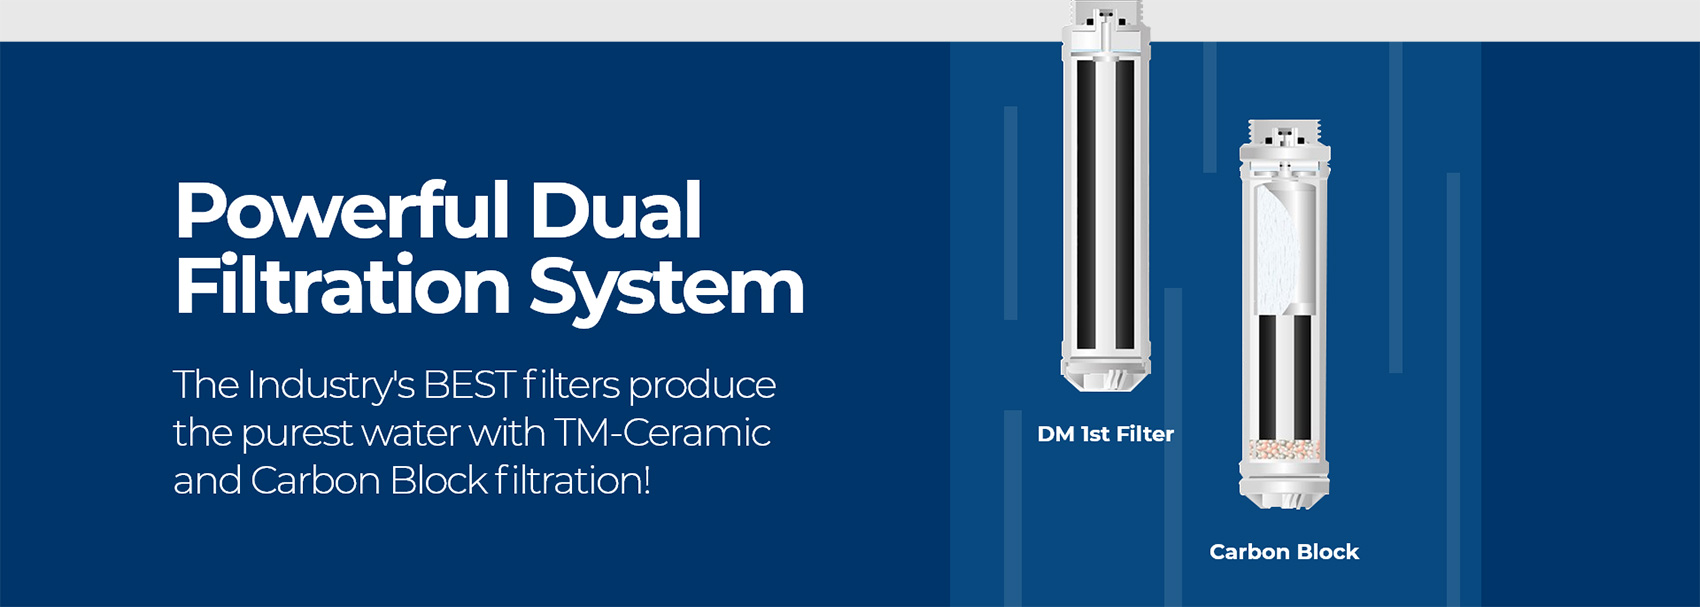 Powerful Dual Filtration System!